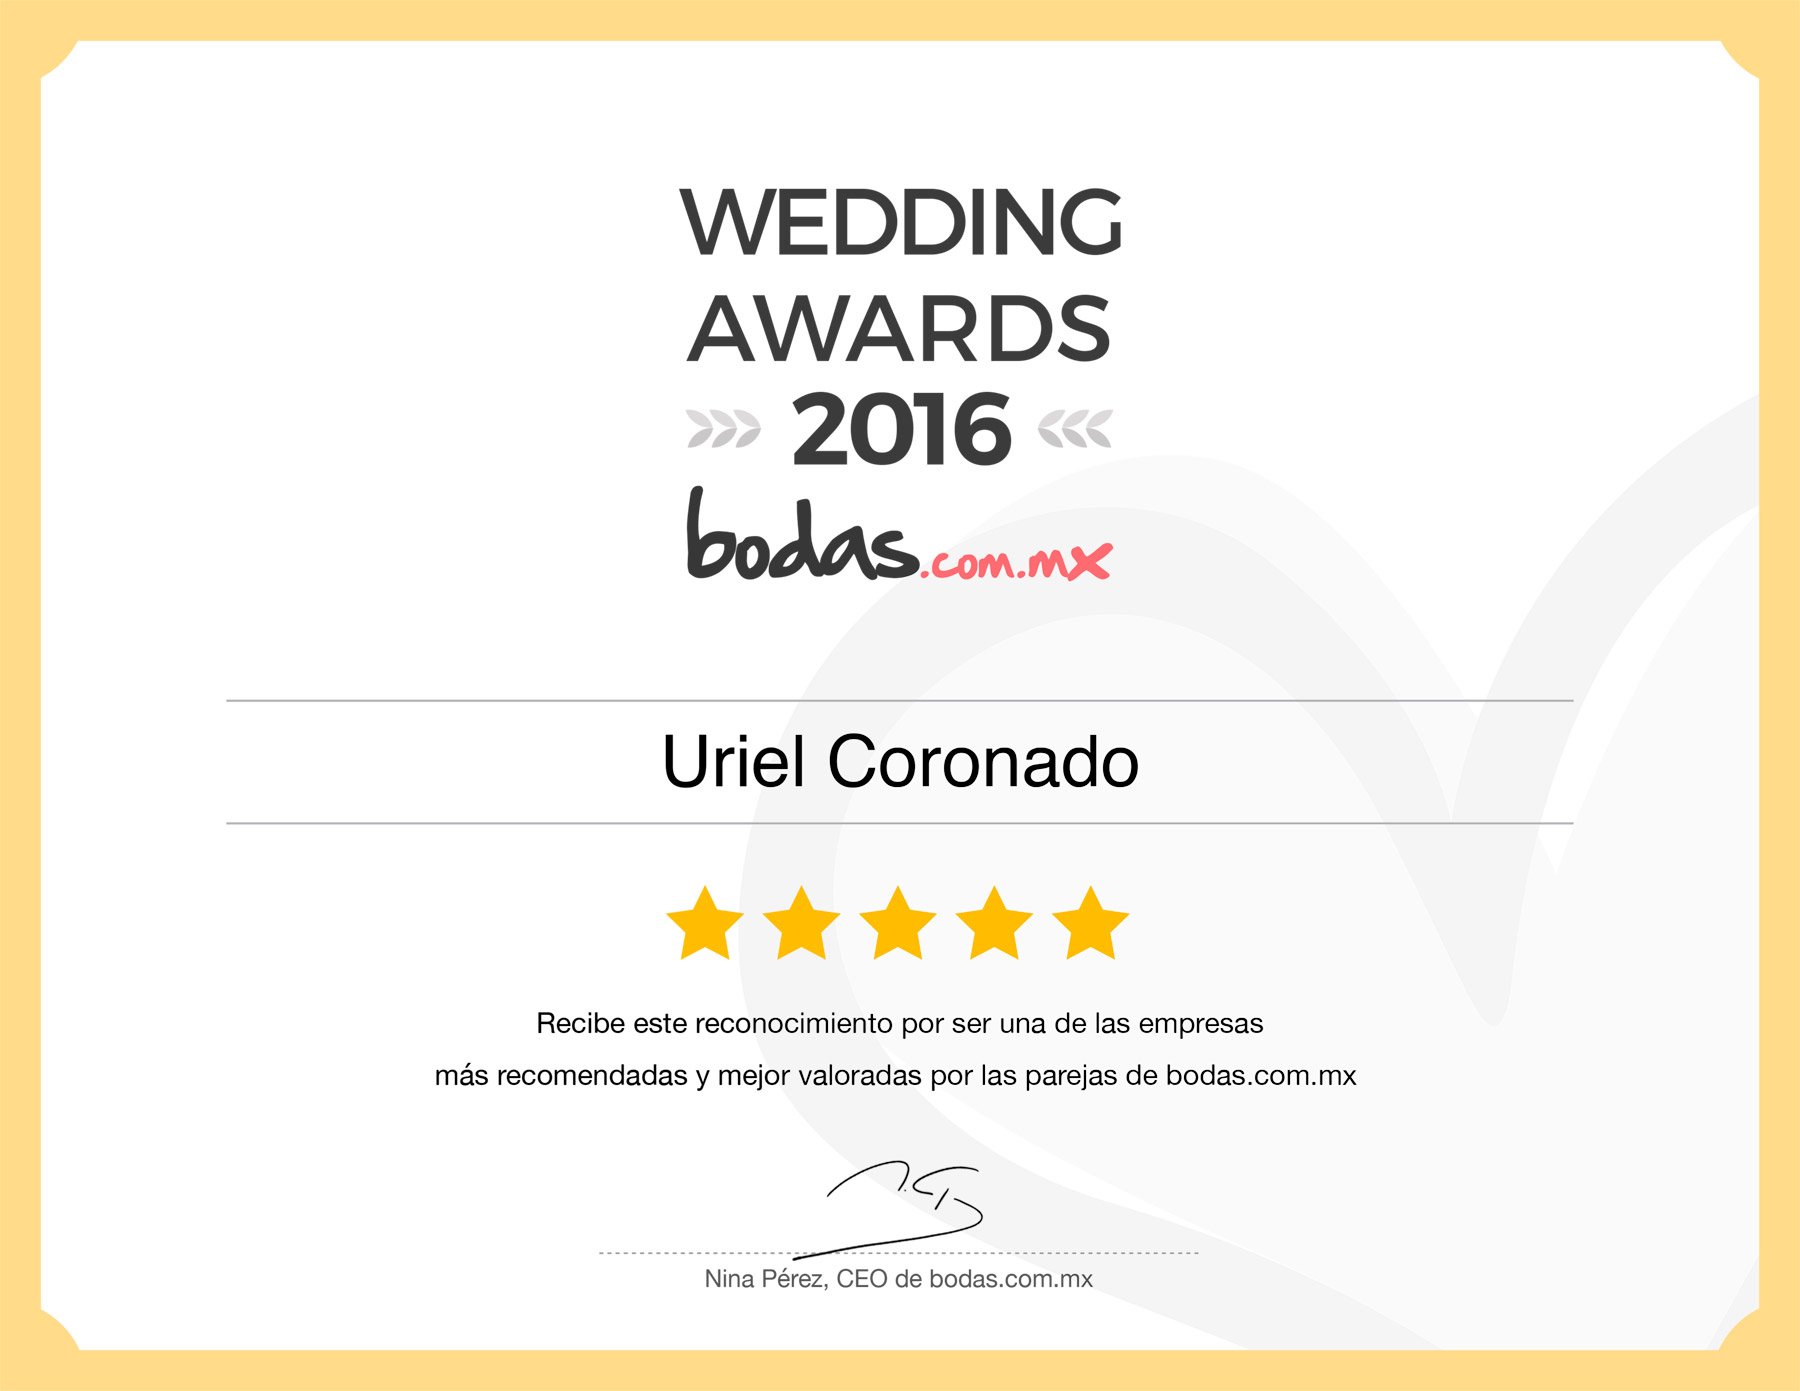 Wedding-Awards-2016-Uriel-Coronado-San-Luis-Potosi